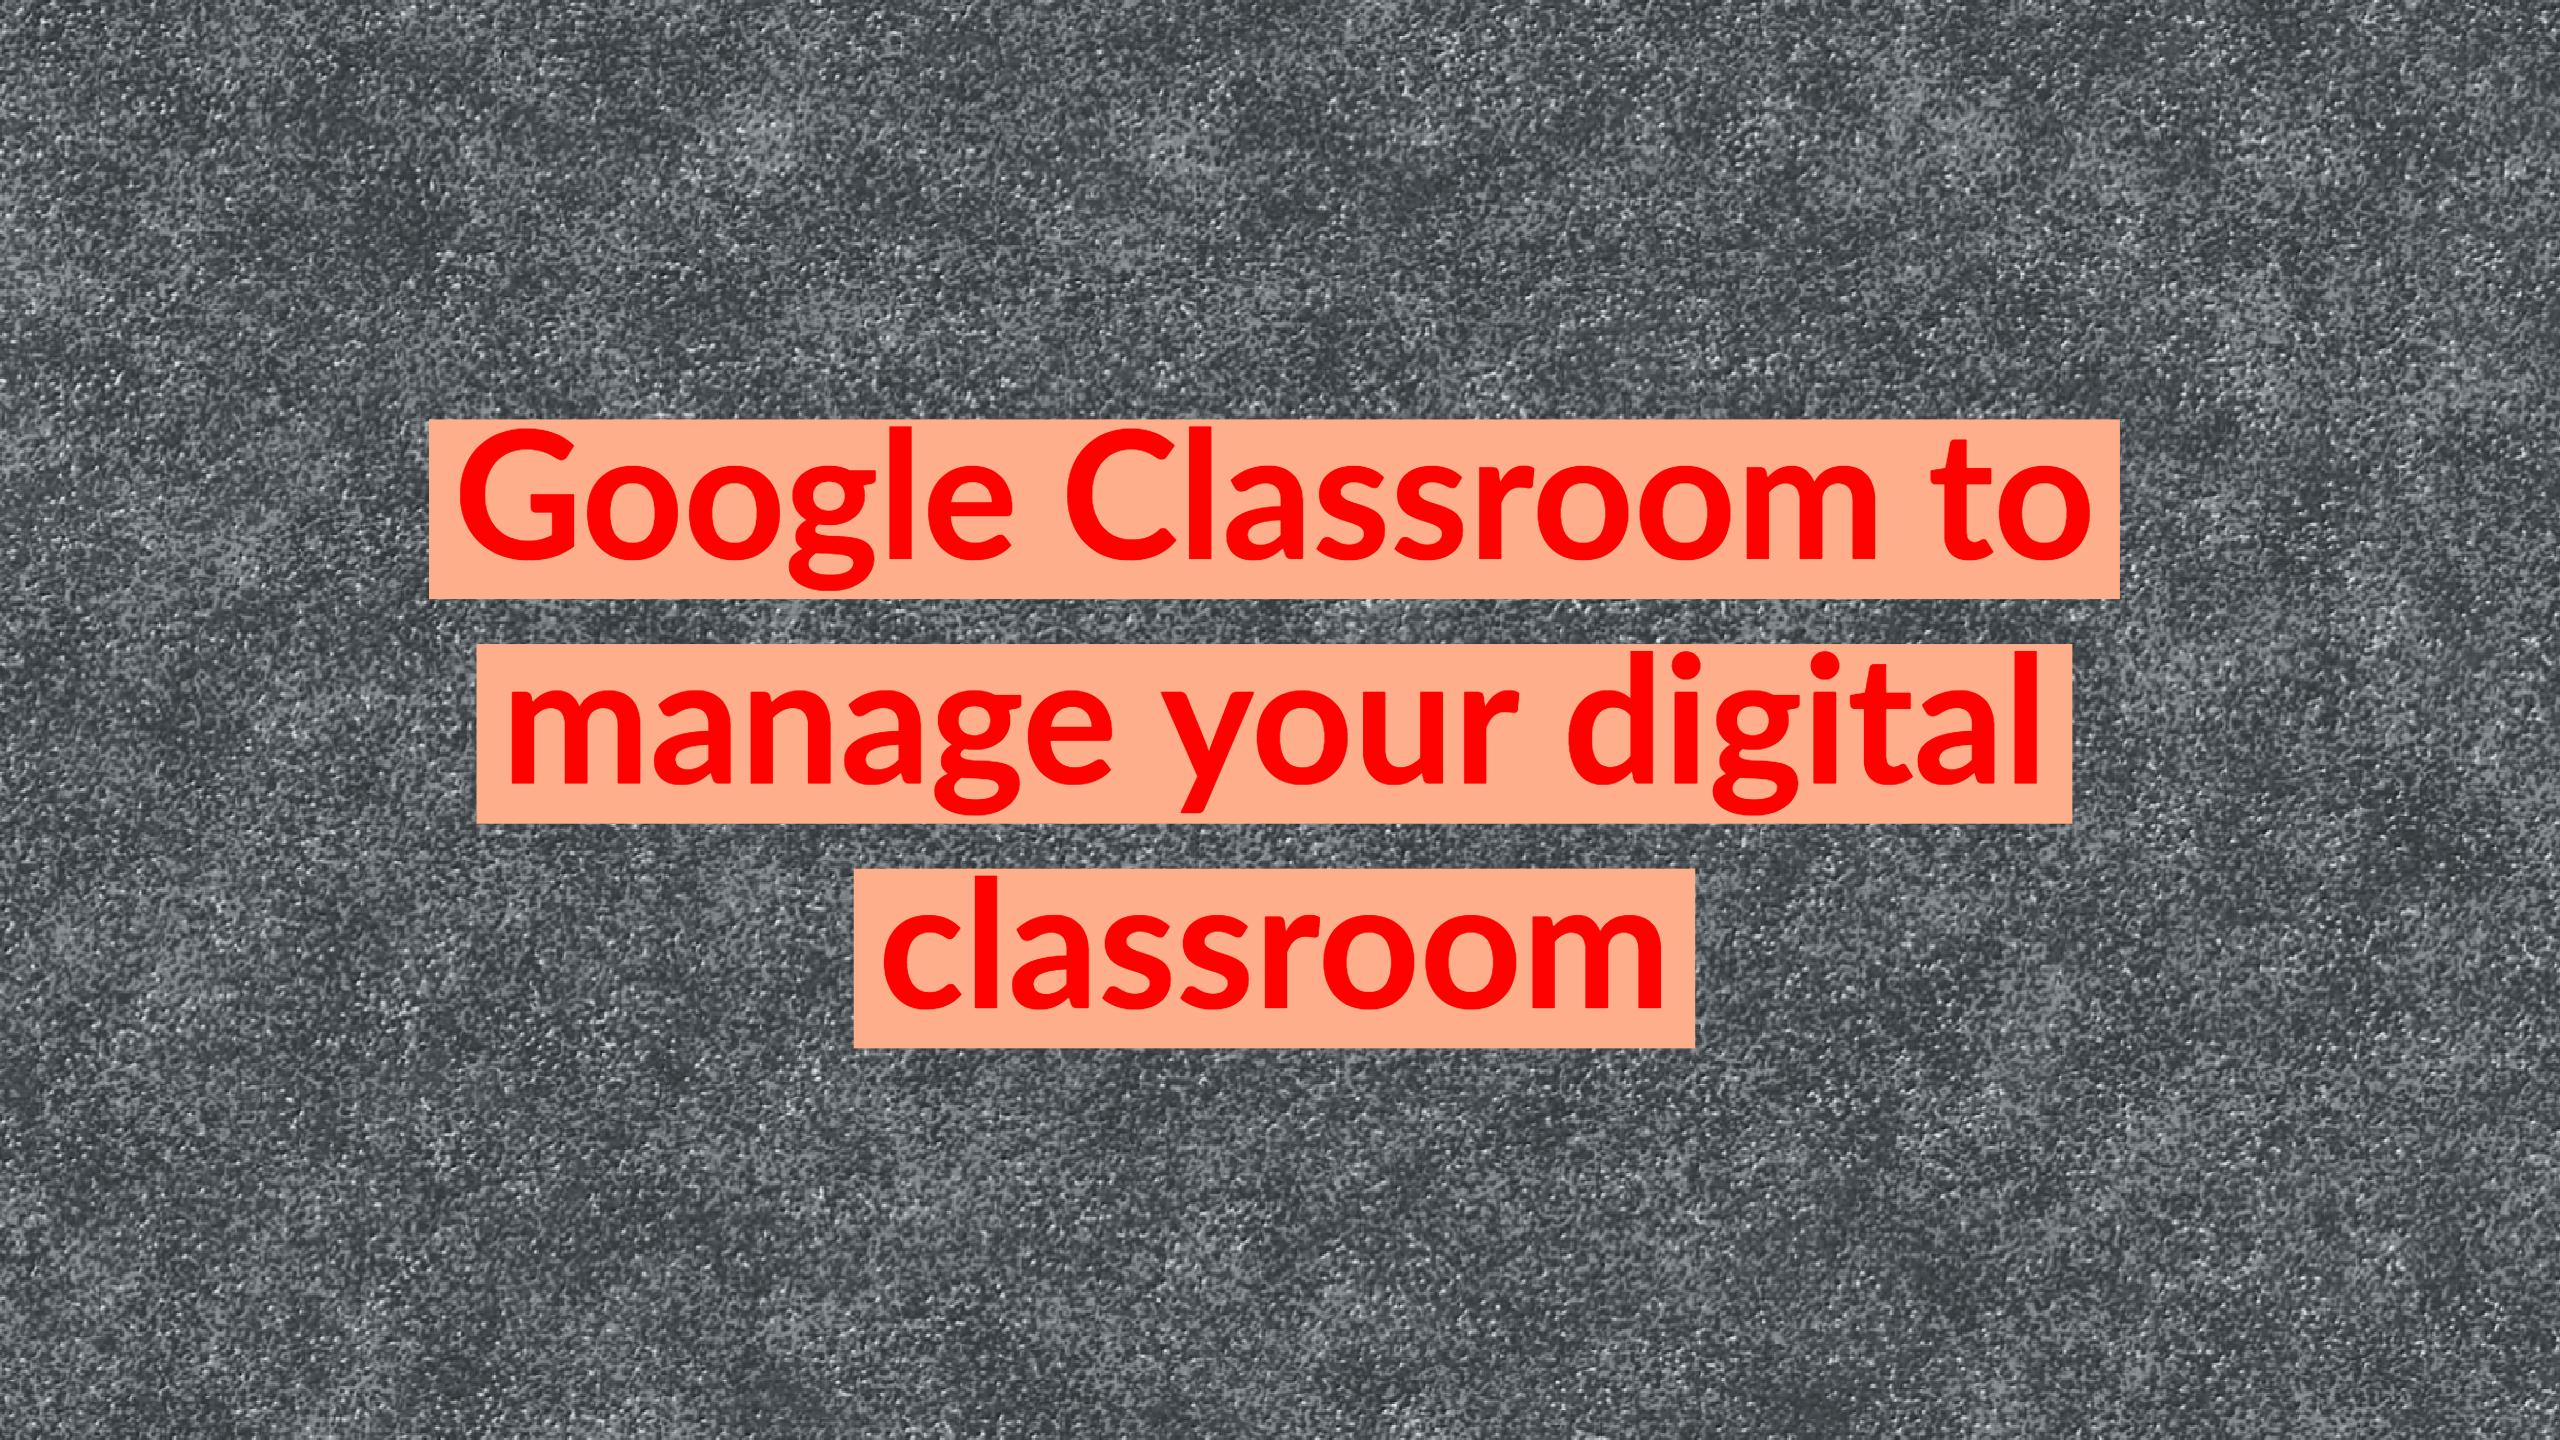 create a paperless classroom with just 3 educational apps